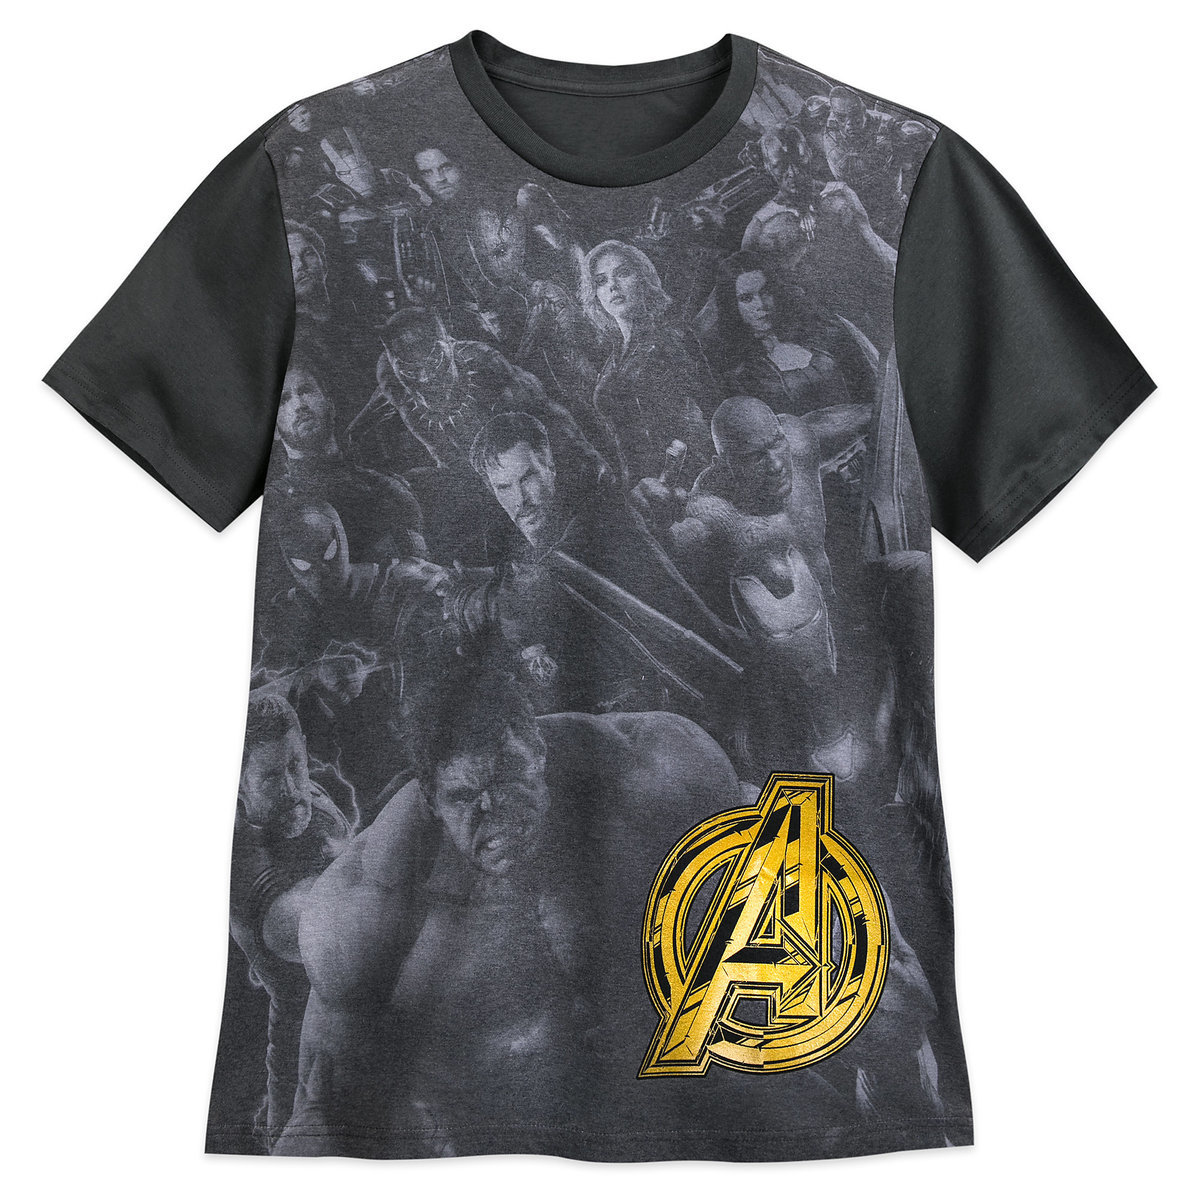 8d00fbb05fab4 Product Image of Marvel s Avengers  Infinity War Cast T-Shirt for Men   1